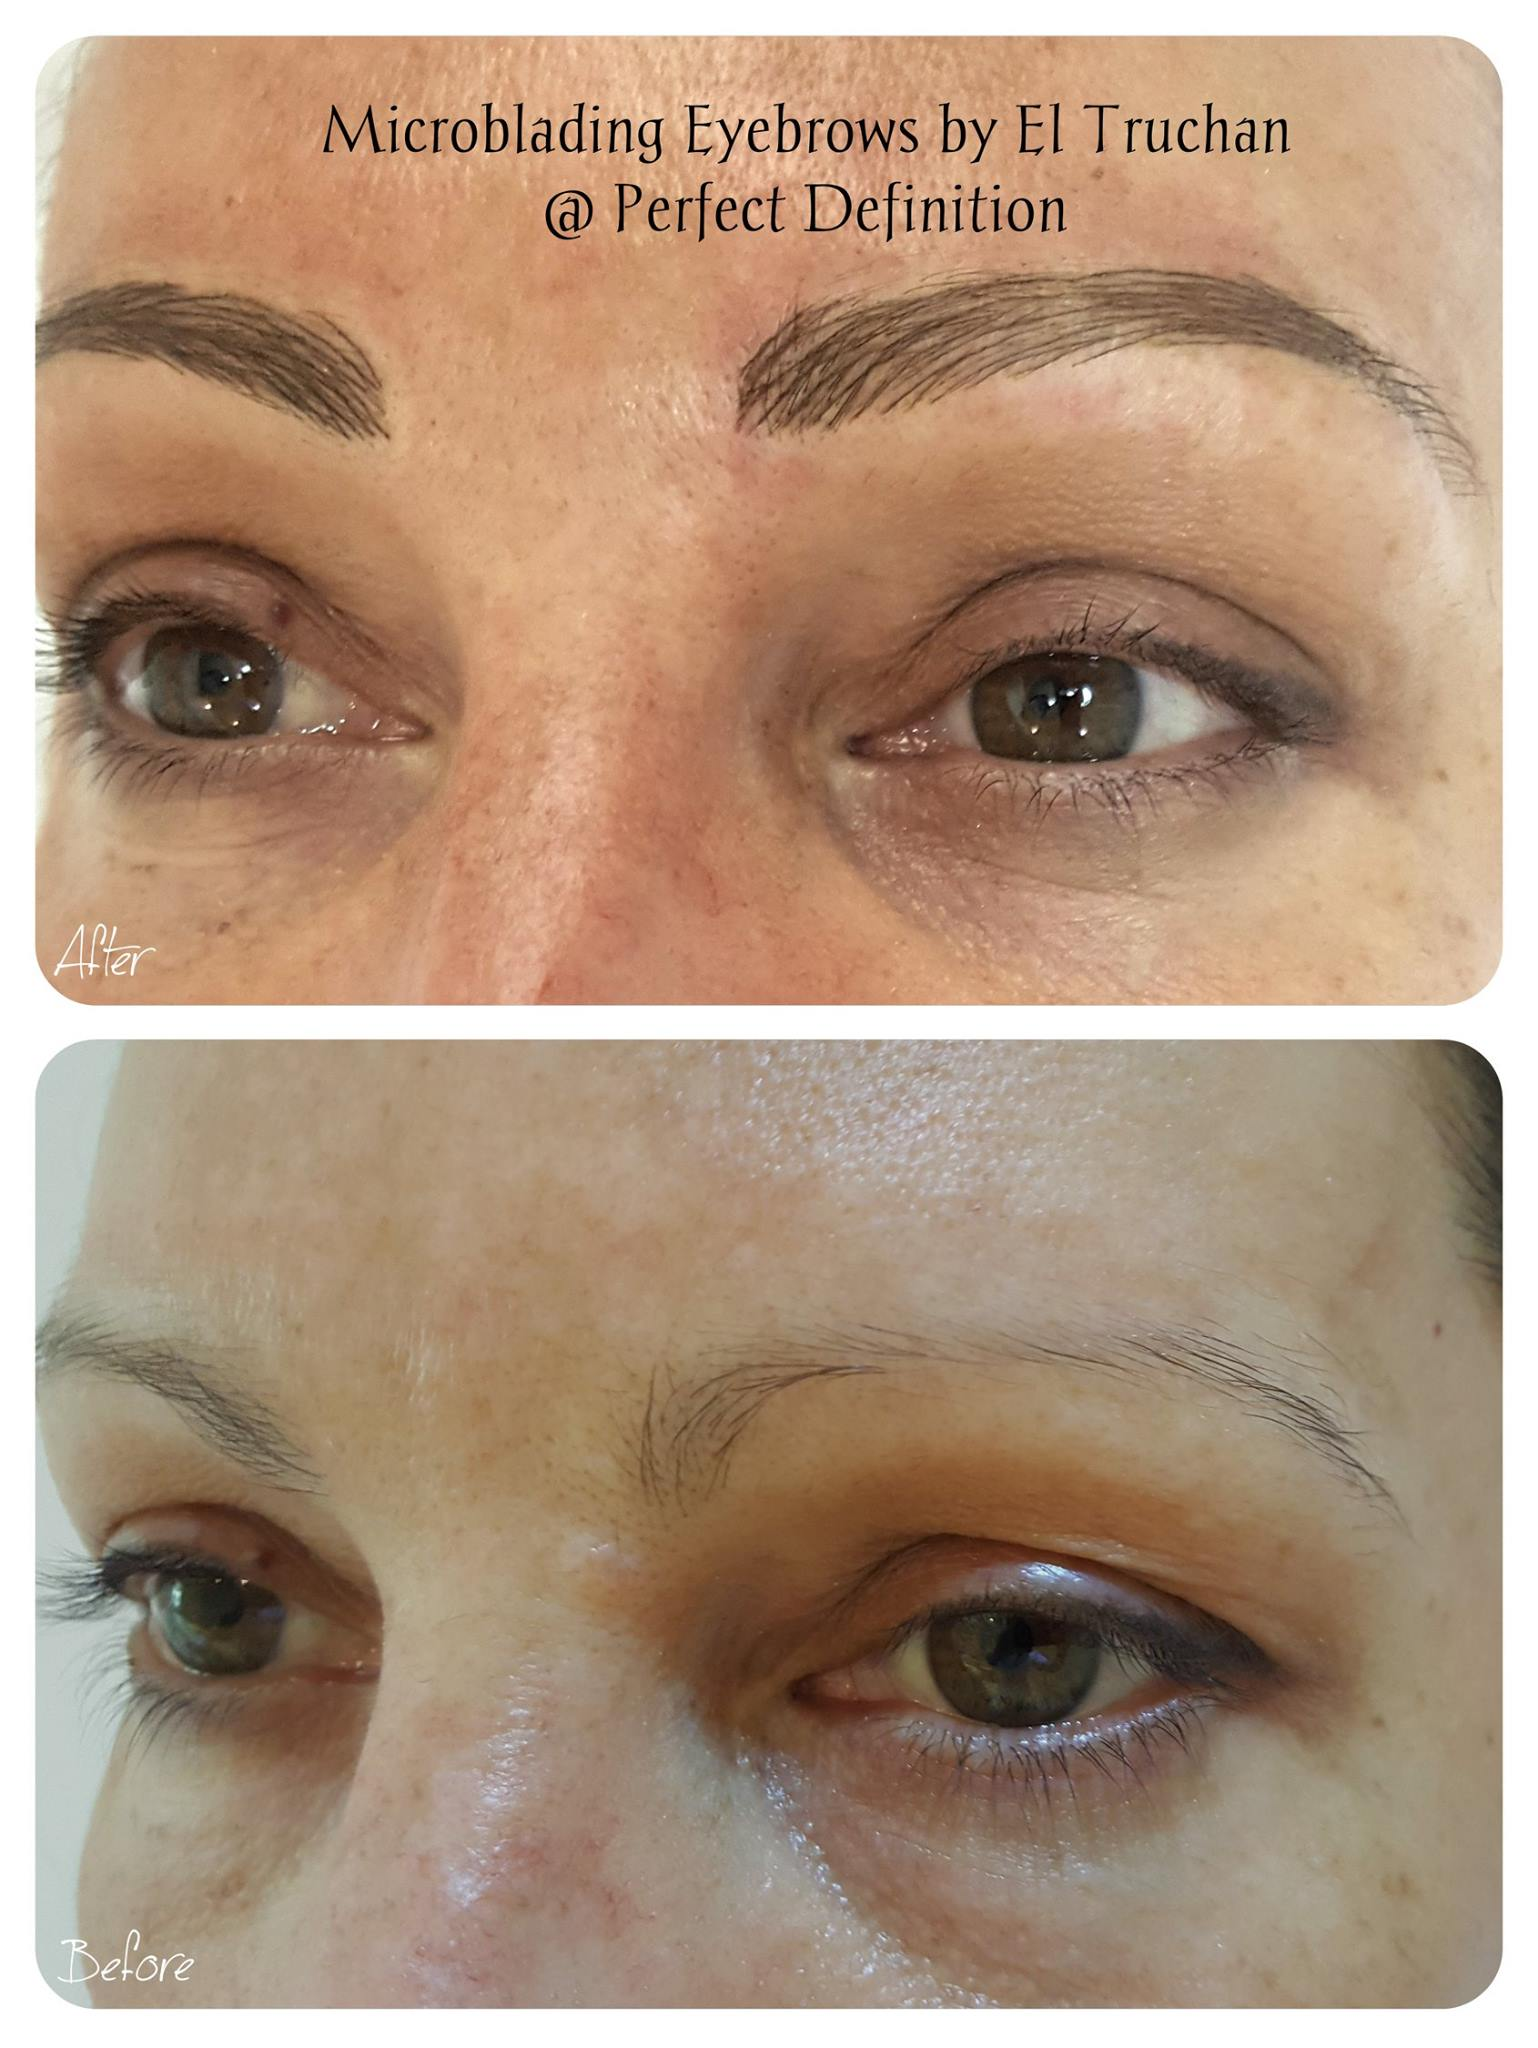 Microblading Eyebrows El Truchan